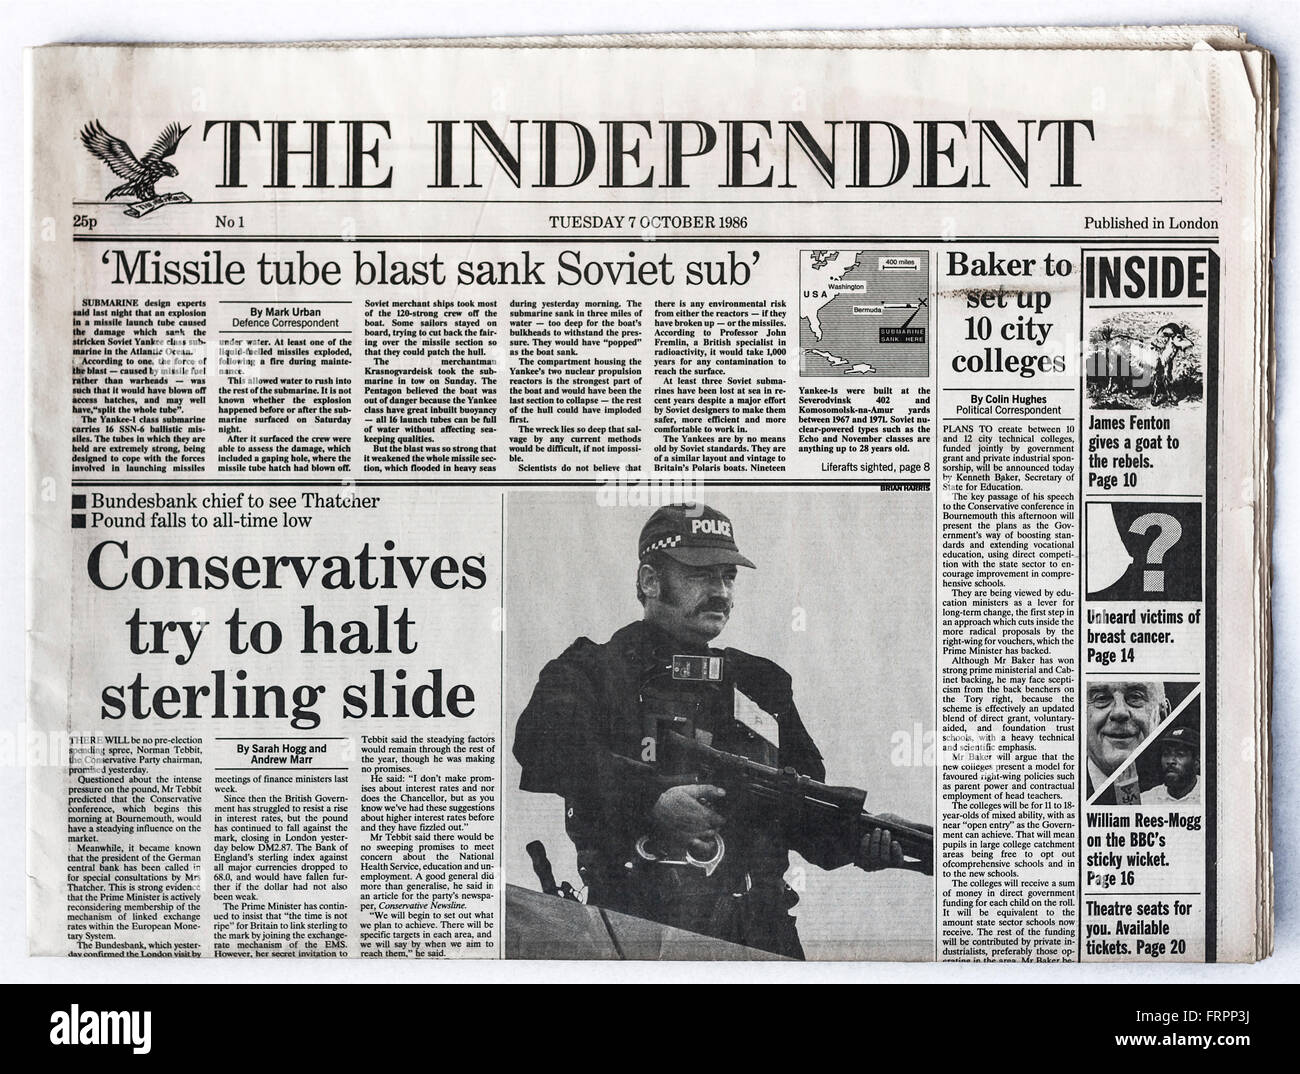 Upper front page Issue #1 'The Independent' UK national newspaper launched Tuesday 7th October 1986 - 'The - Stock Image